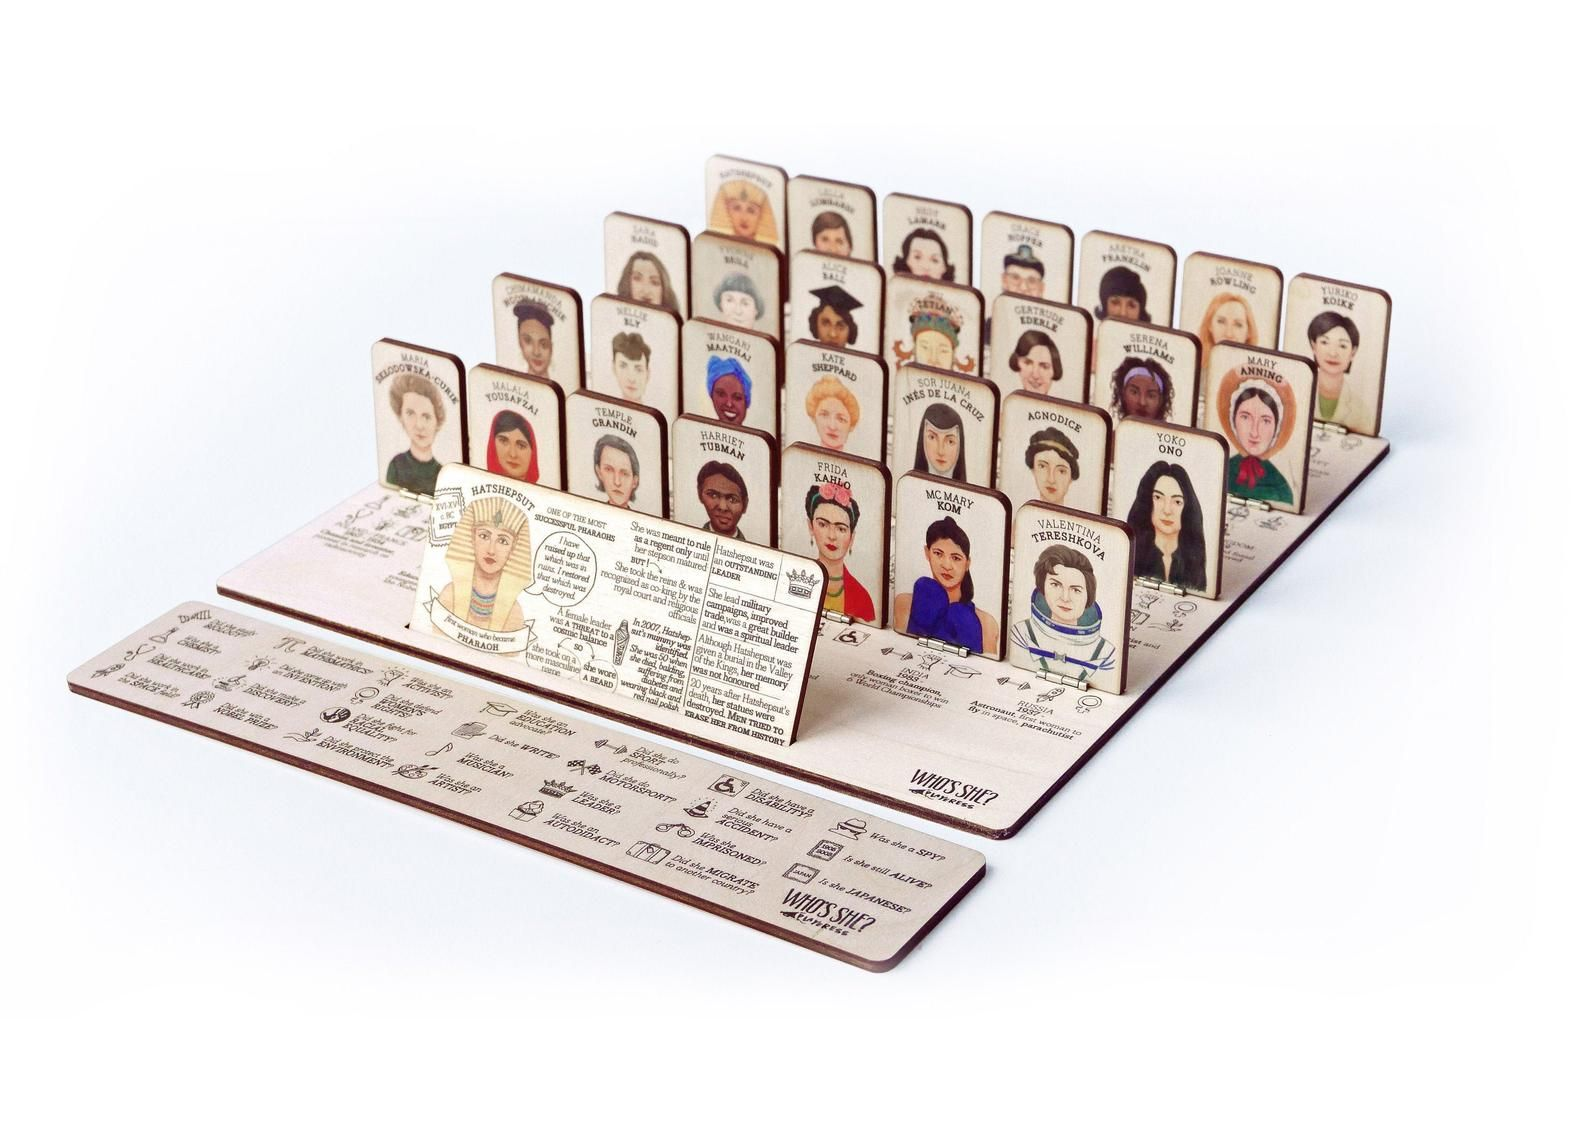 WHO'S SHE wooden board game about women who changed the